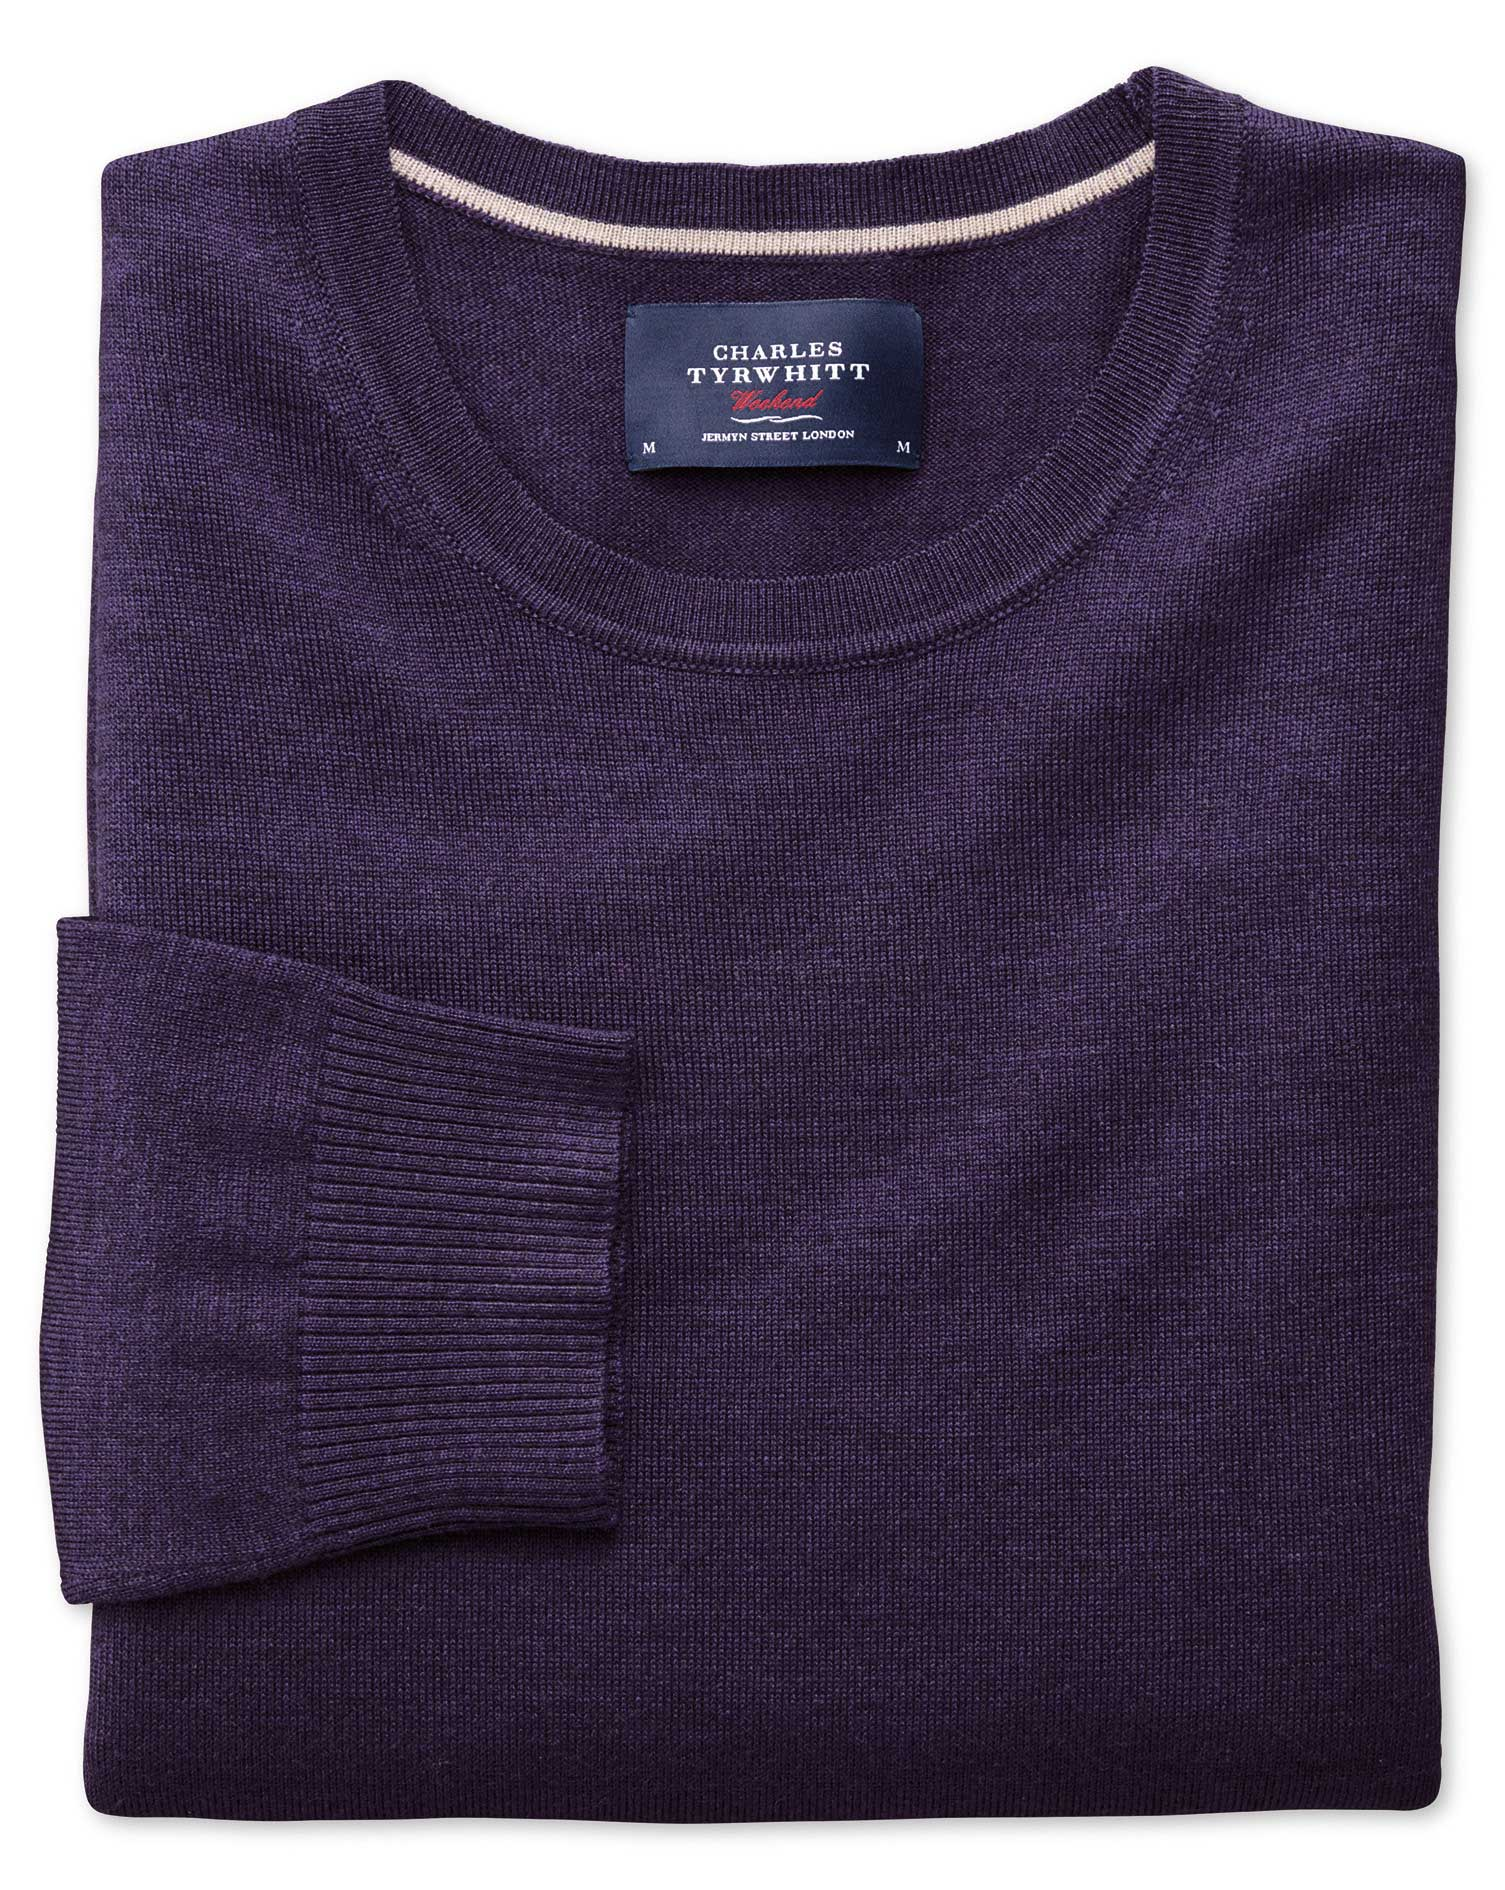 Purple Merino Wool Crew Neck Jumper Size XXXL by Charles Tyrwhitt